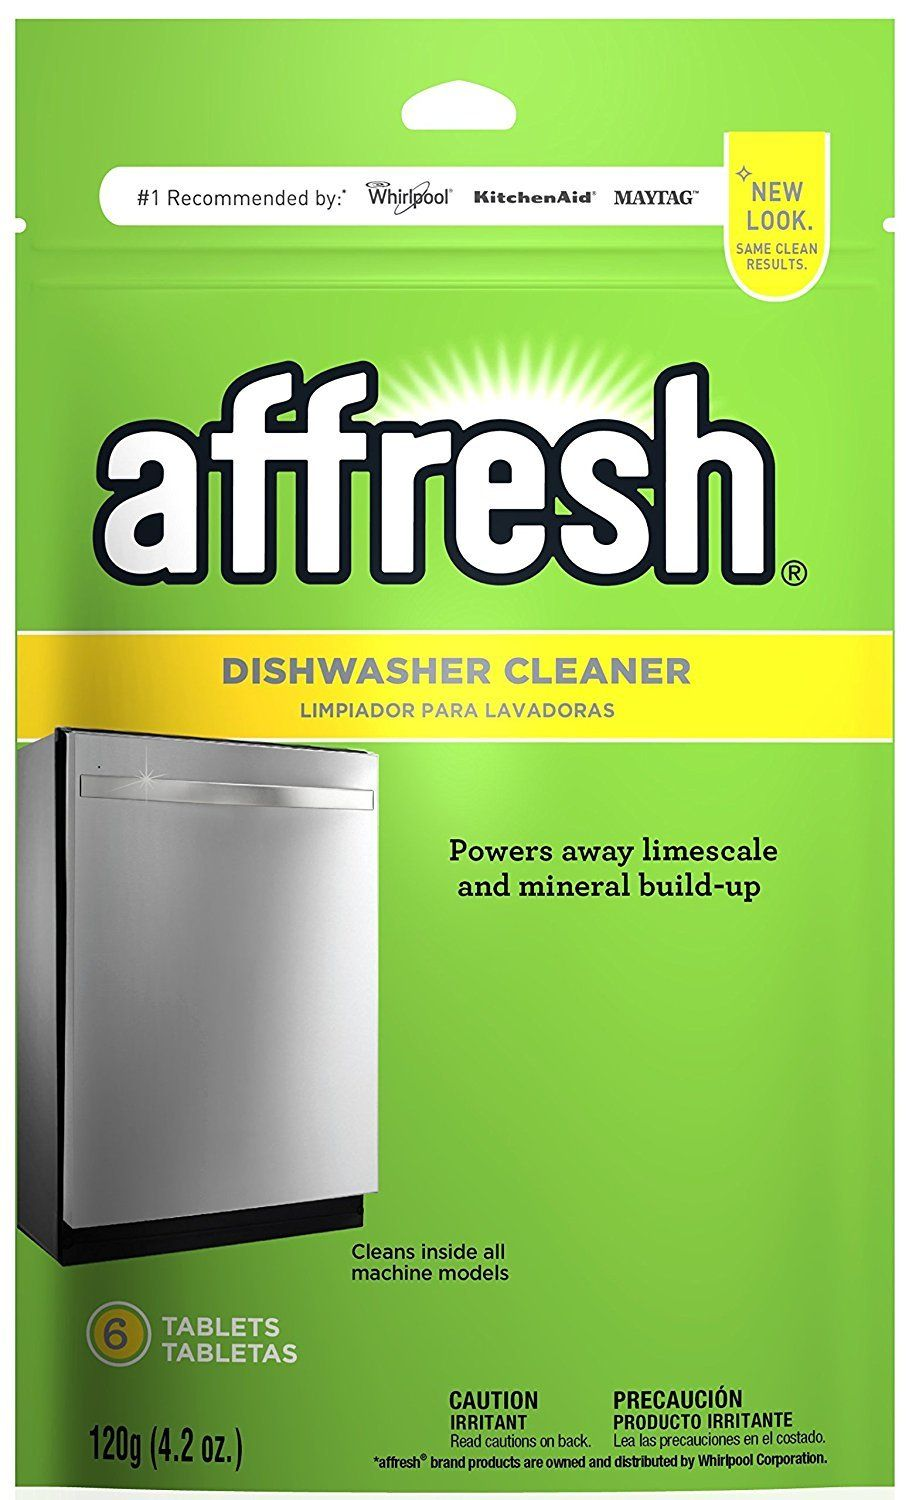 Affresh W10282479 Dishwasher Cleaner, 6 Tablets   Products   Pinterest 643ee7bc41